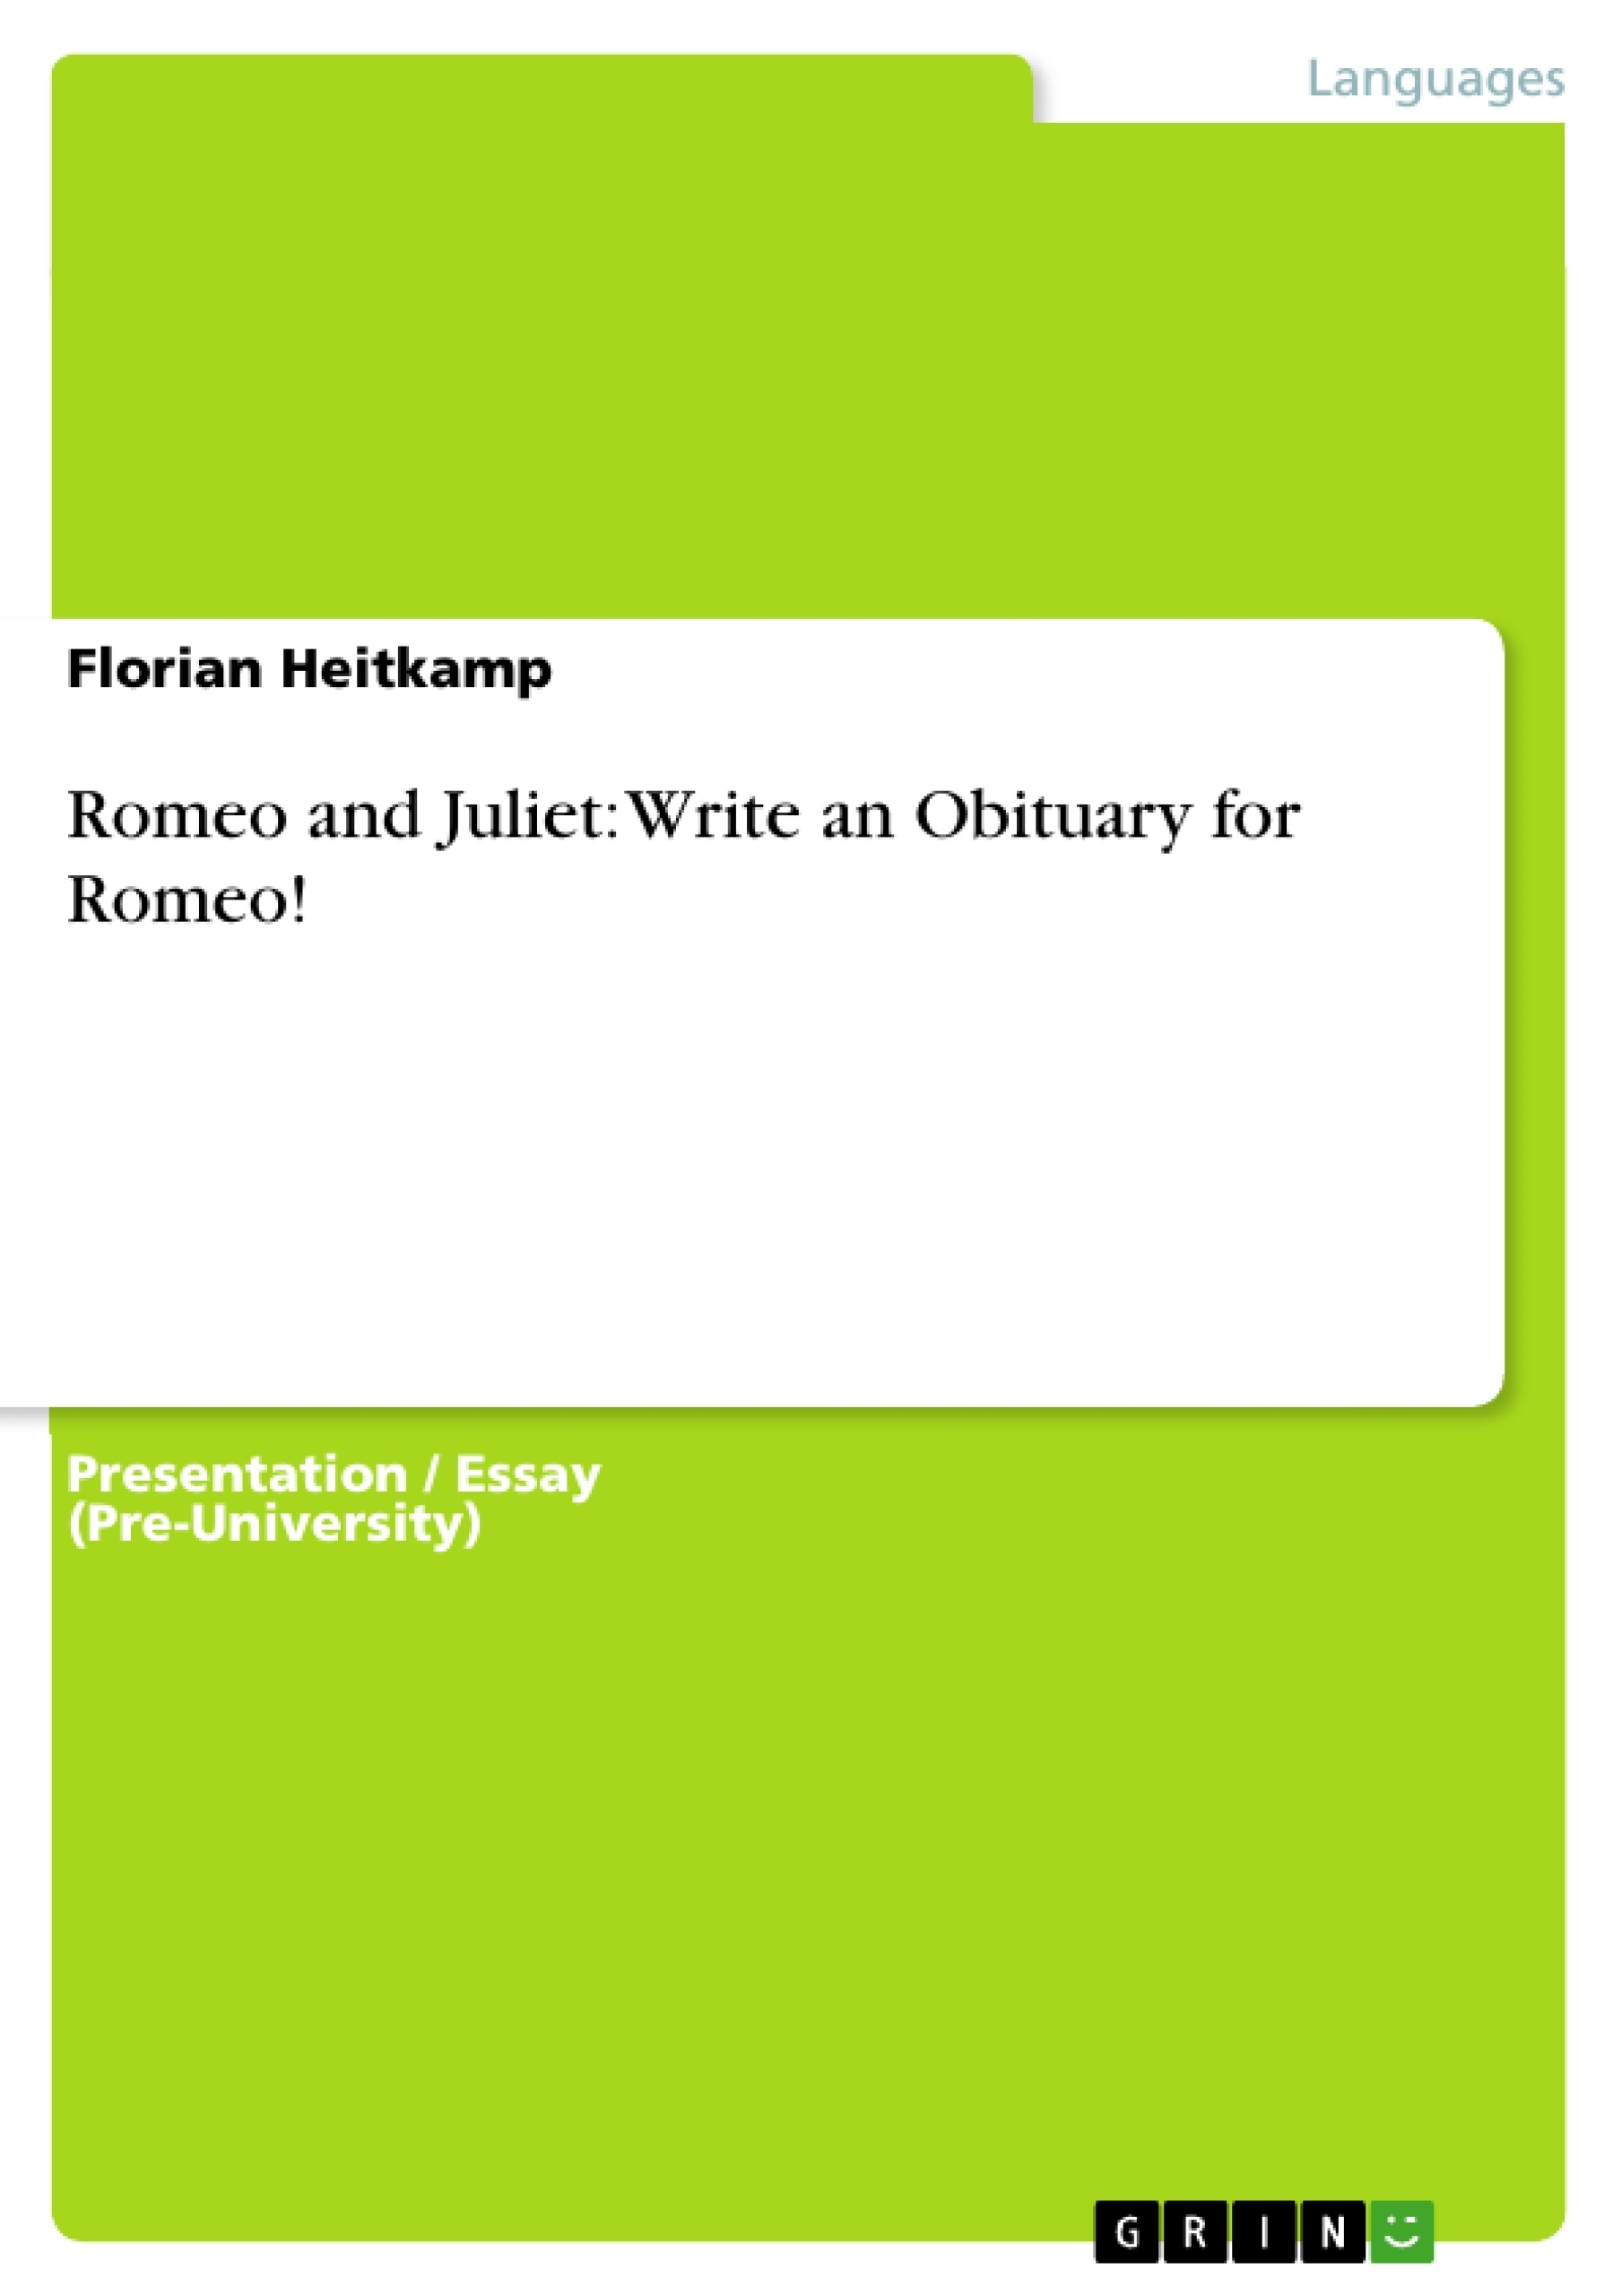 Romeo And Juliet Death Essay Romeo And Juliet Juliet S Death Romeo  Romeo And Juliet Write An Obituary For Romeo Publish Your Romeo And Juliet  Write An Obituary